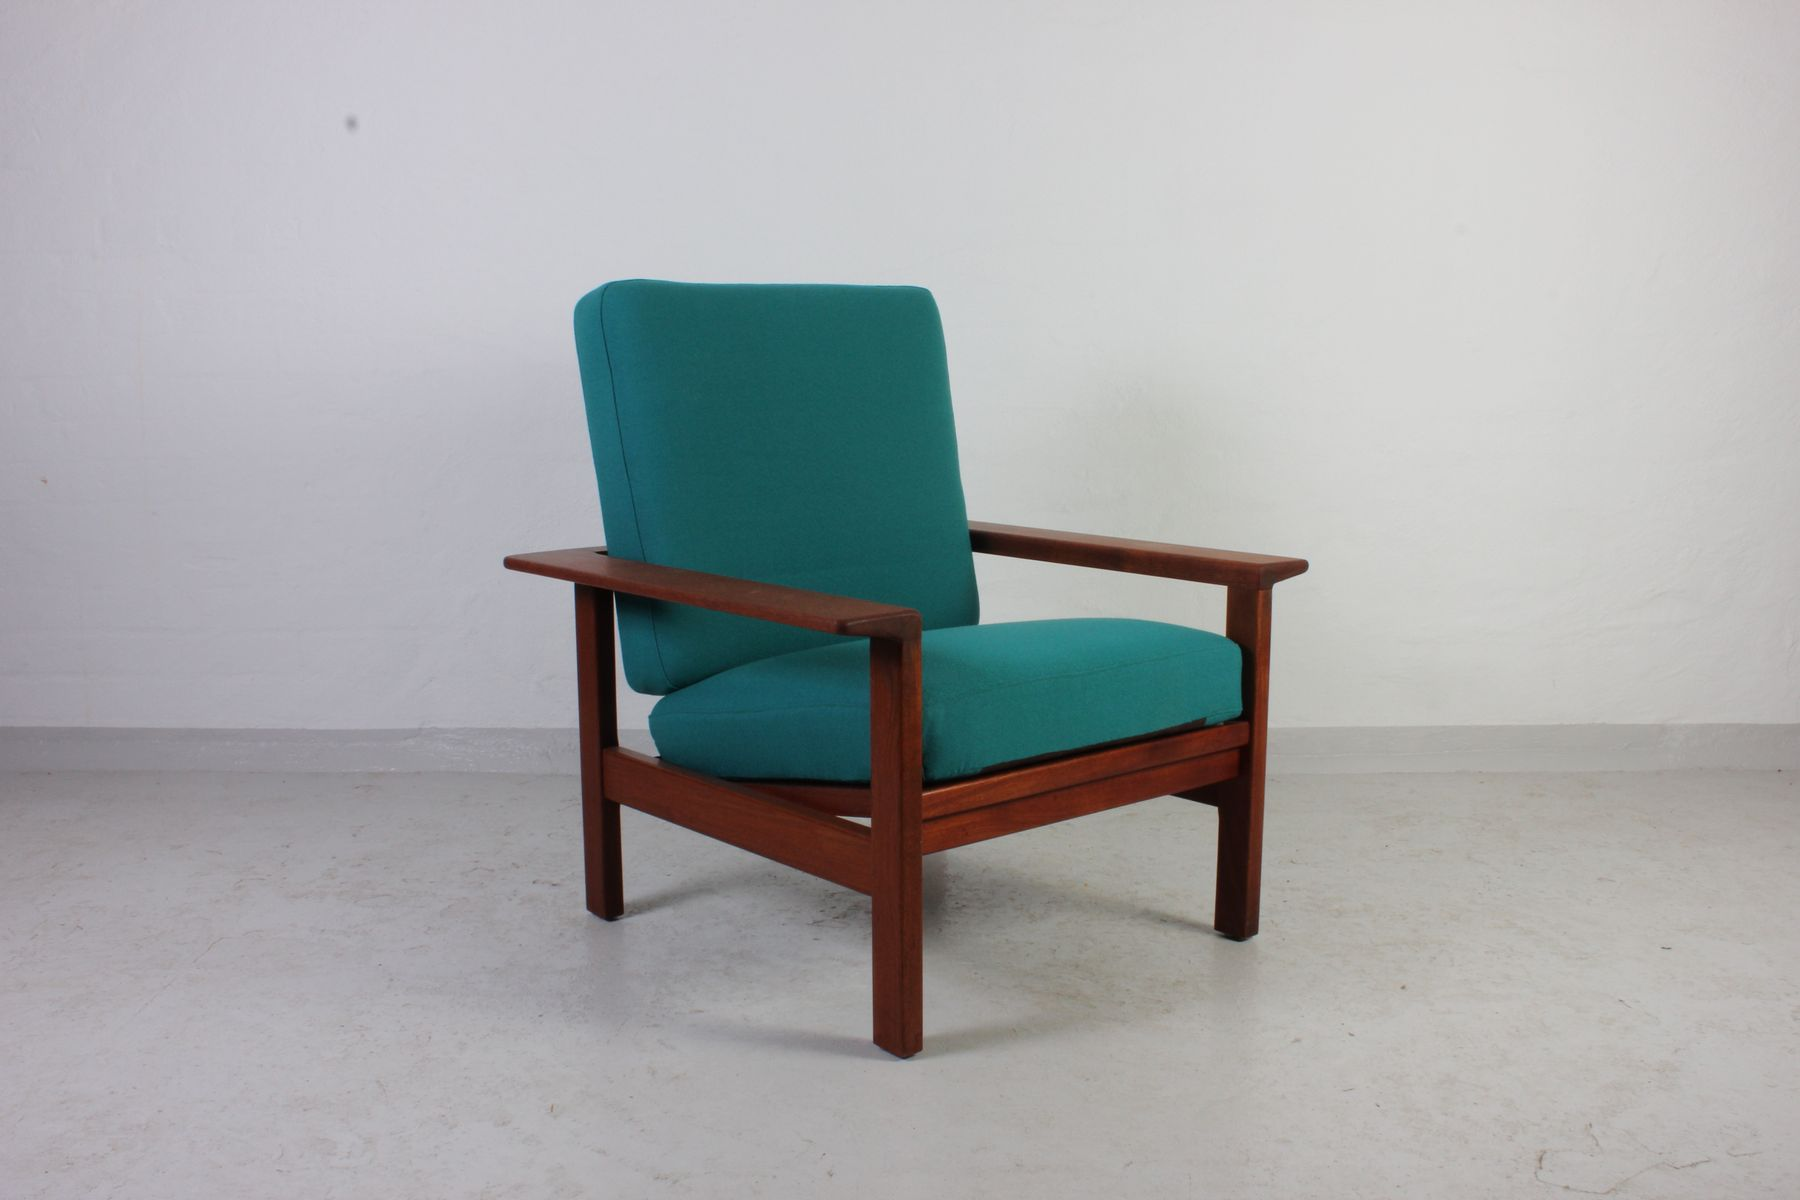 Danish Mid Century Teak Lounge Chair for sale at Pamono